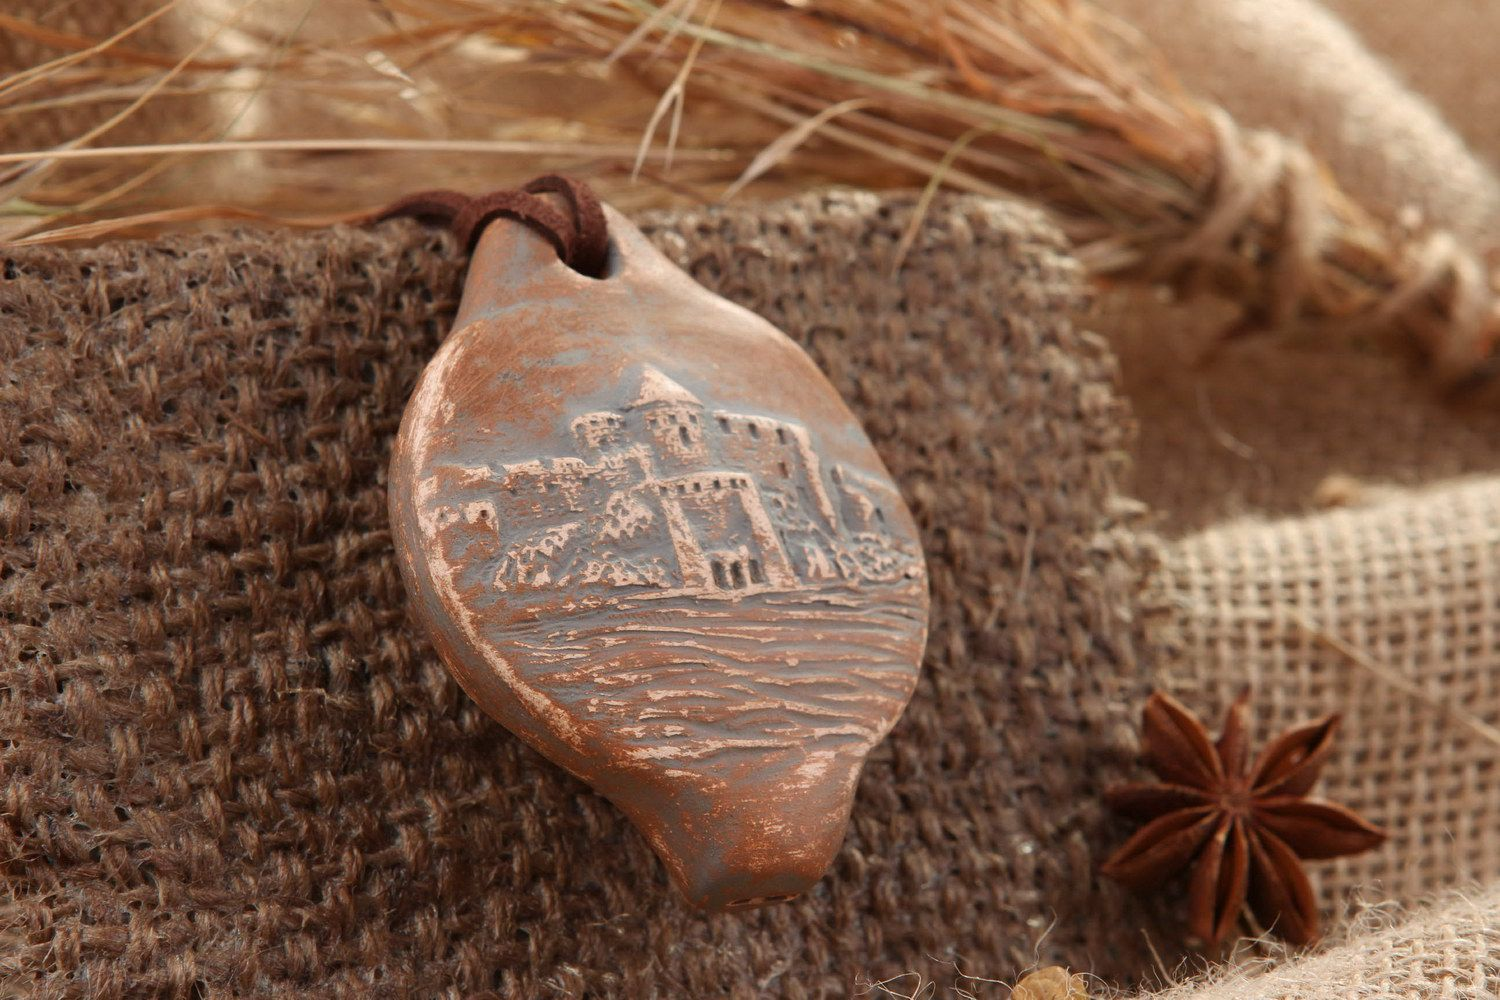 Tin whistle pendant made of clay, 5 sounds, Abandoned fortress photo 1